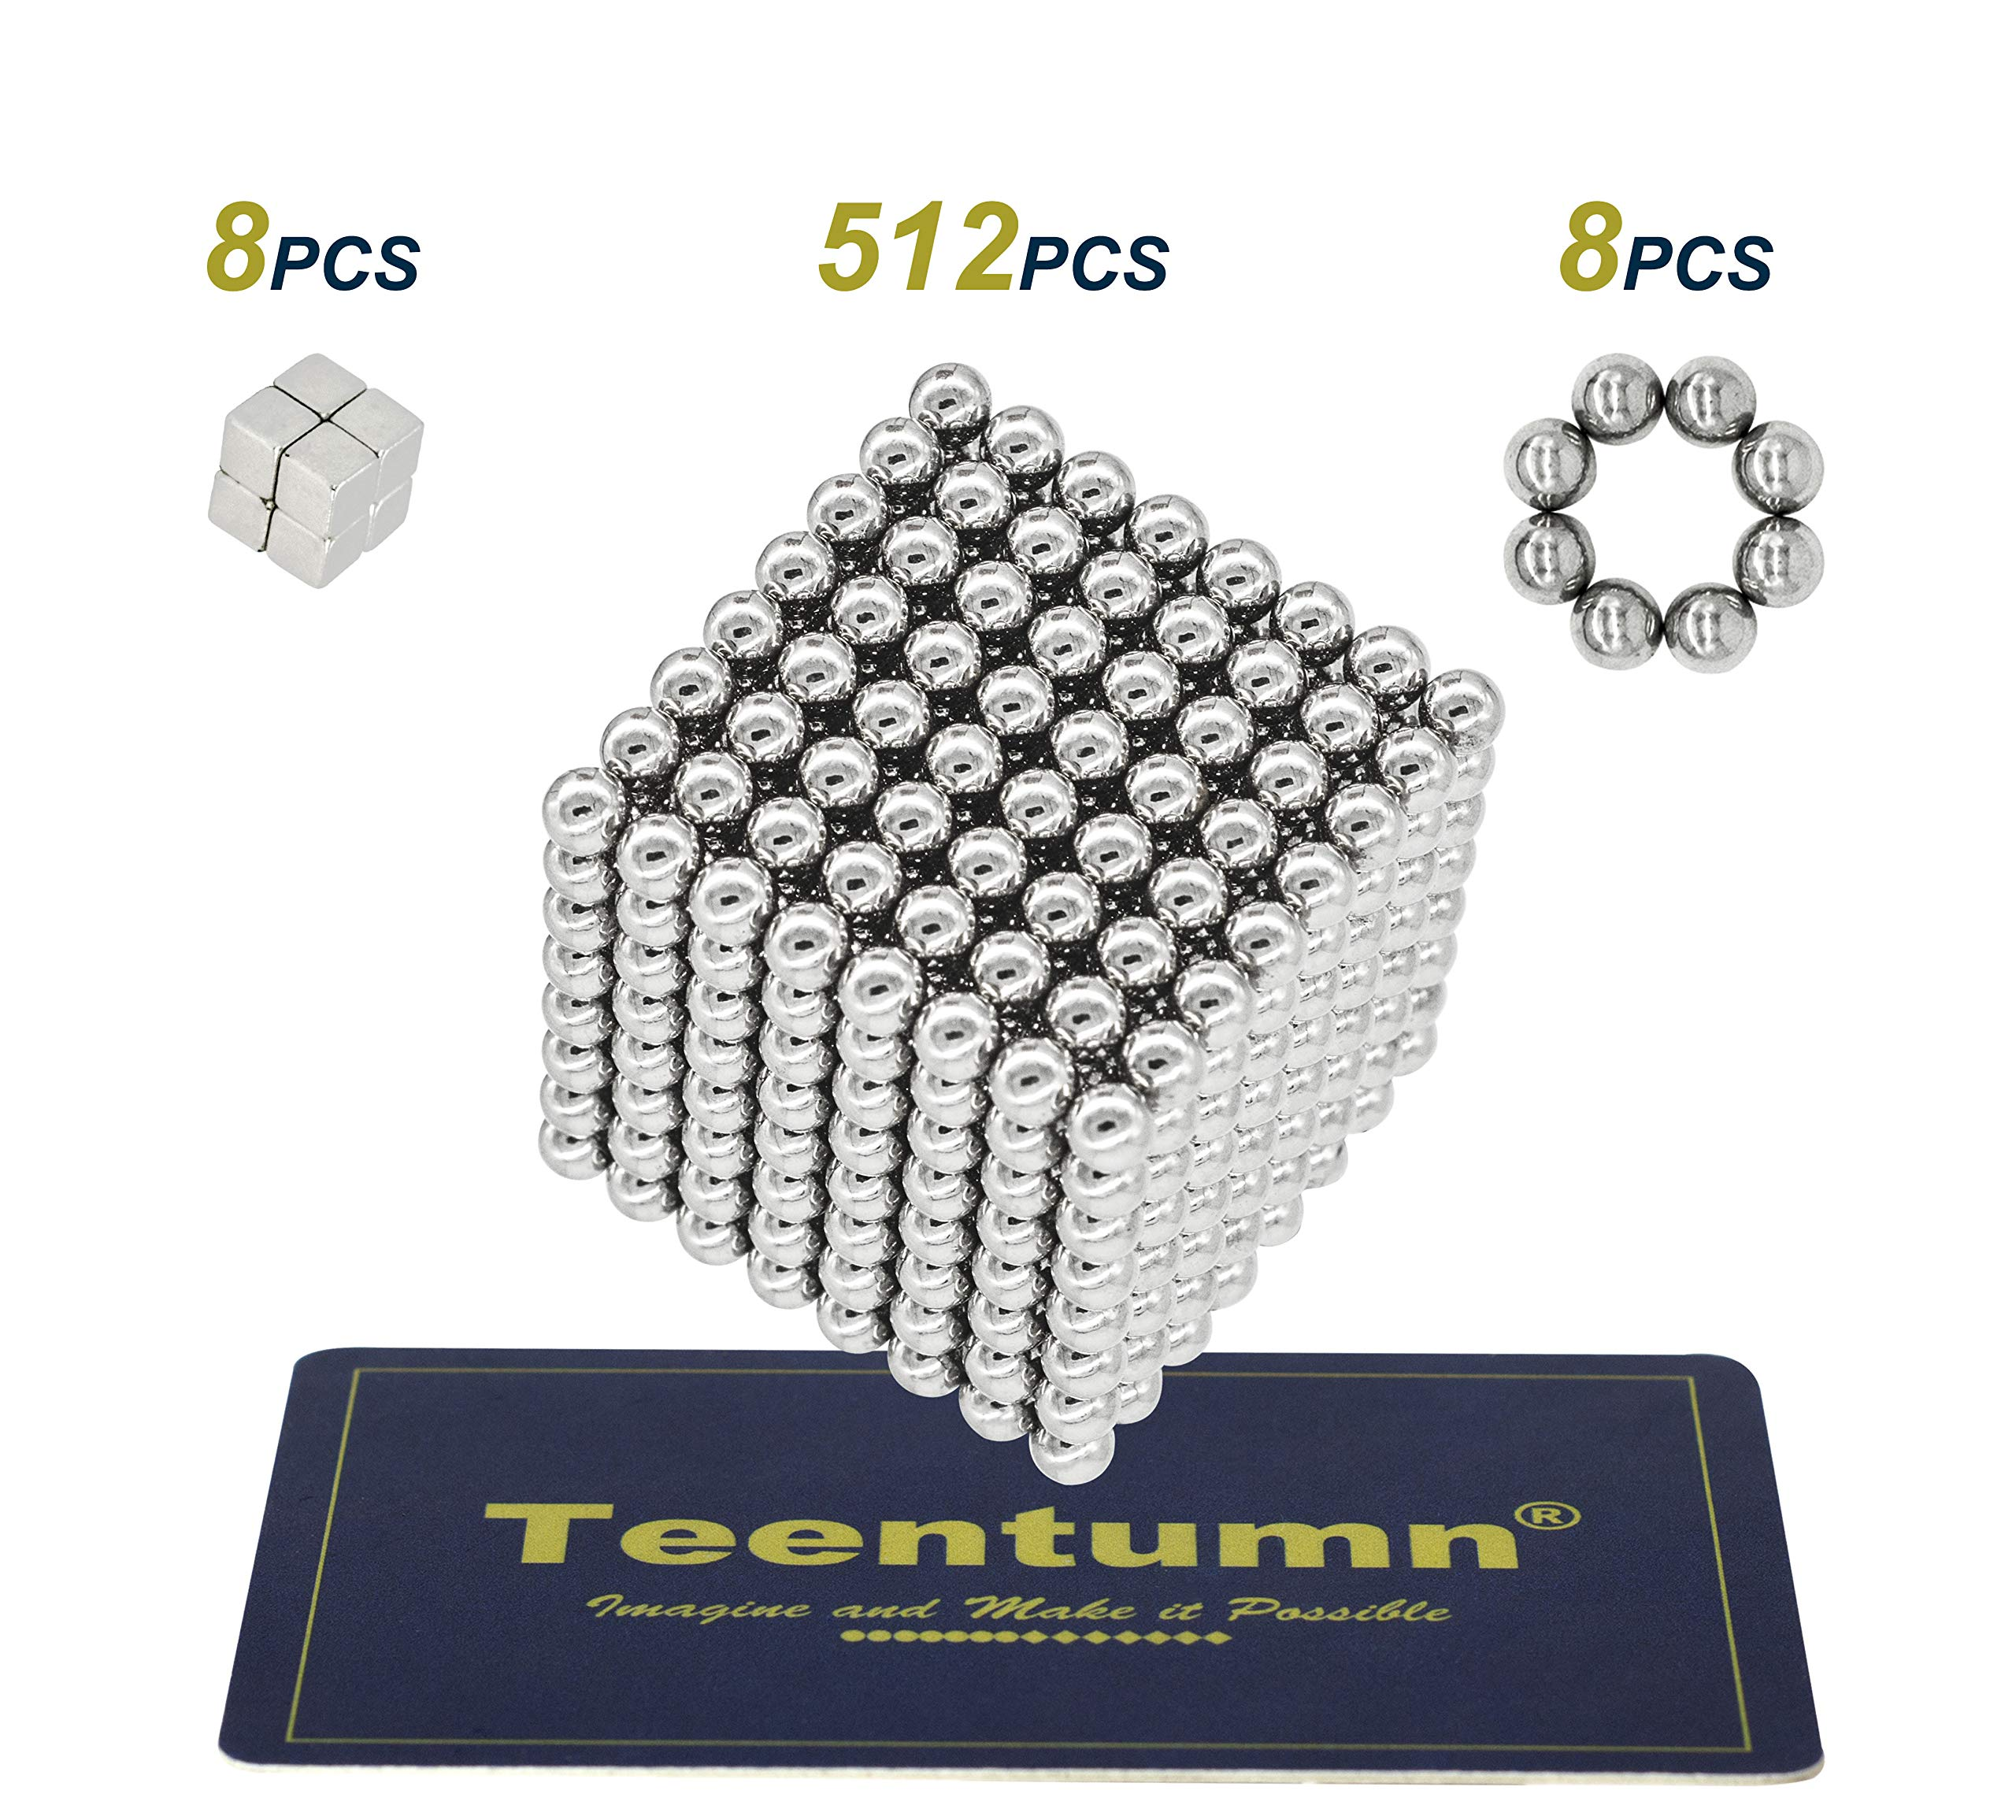 Teentumn 528 Pieces 5mm Sculpture Building Blocks Toys for Intelligence Learning -Office Toy & Stress Relief for Adults by Teentumn